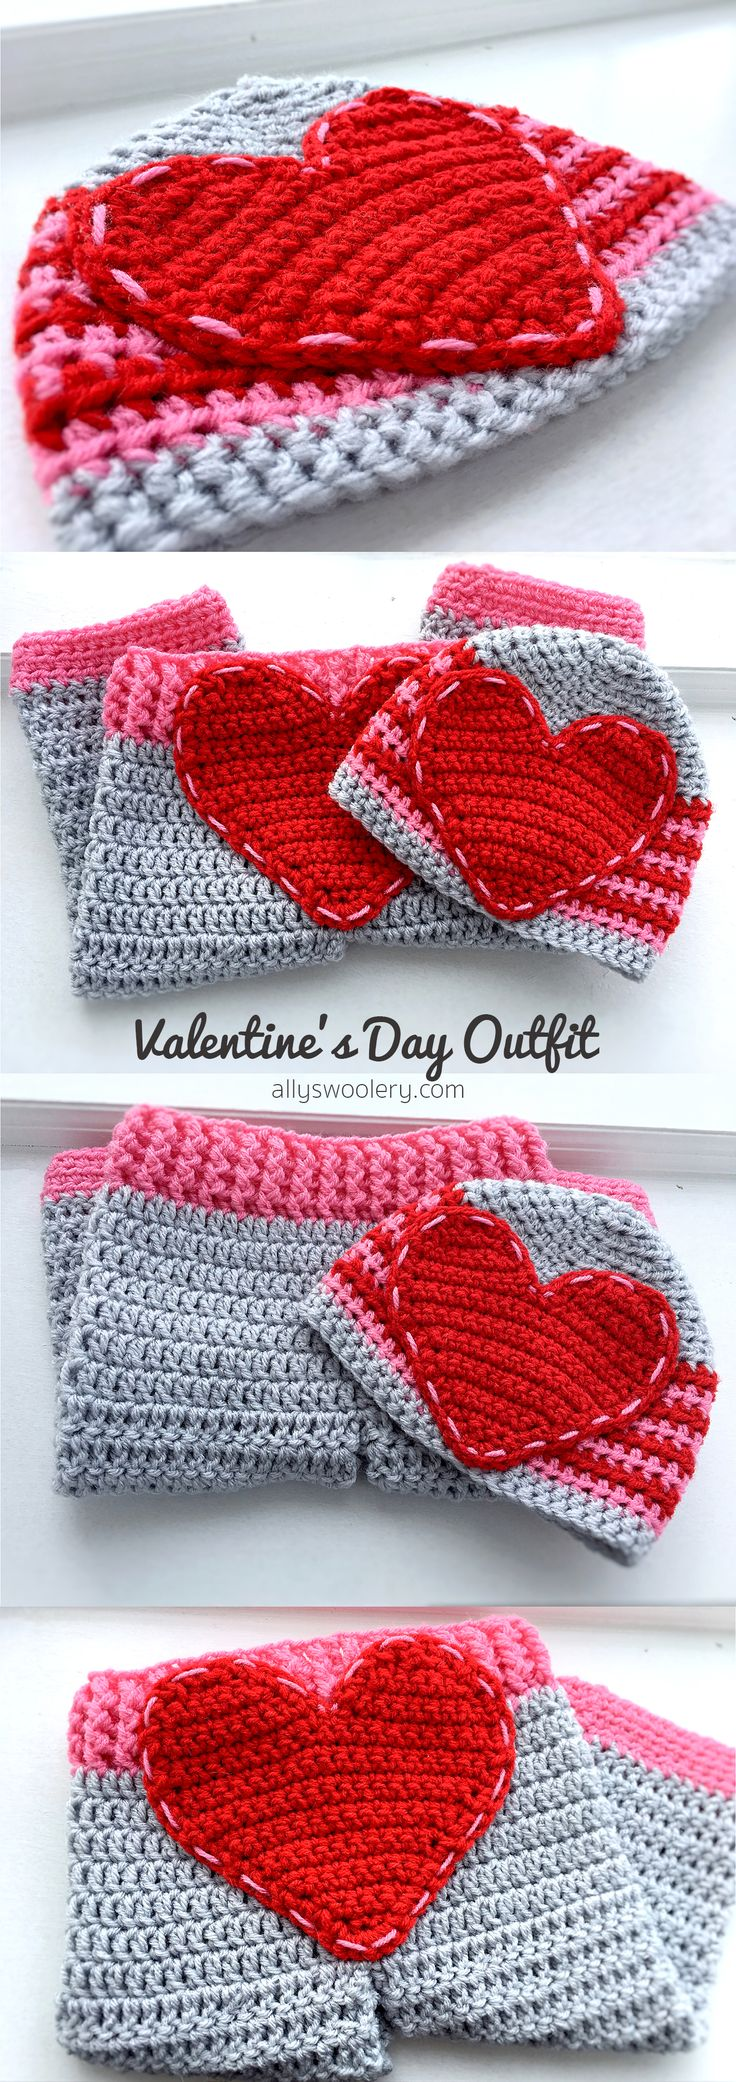 12 month - Valentine's Day Outfit (Pants & Hat) ❤